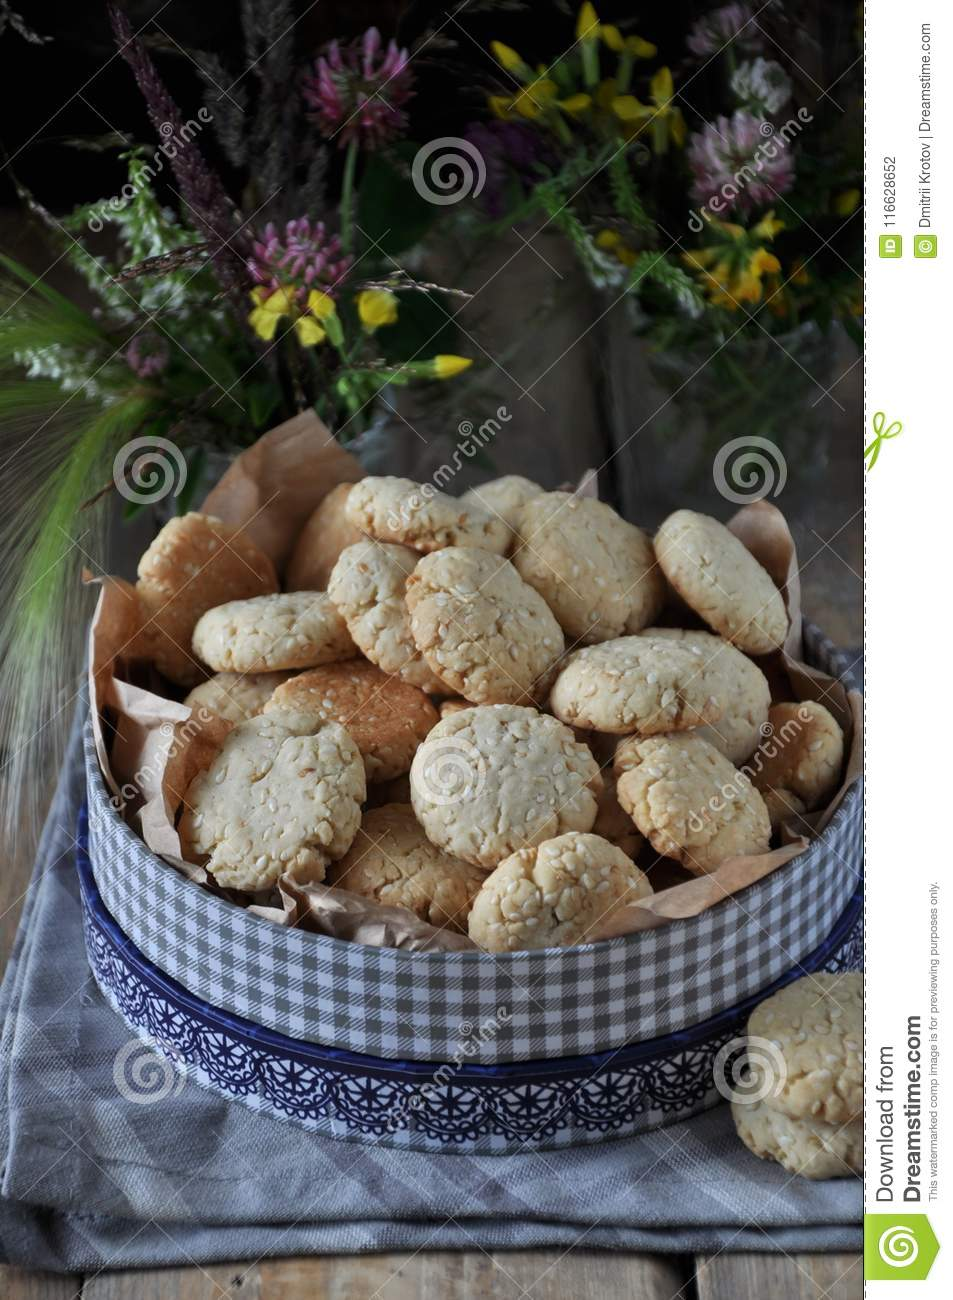 On A Wooden Table, Small Round Biscuits With Sesame Seeds Stock